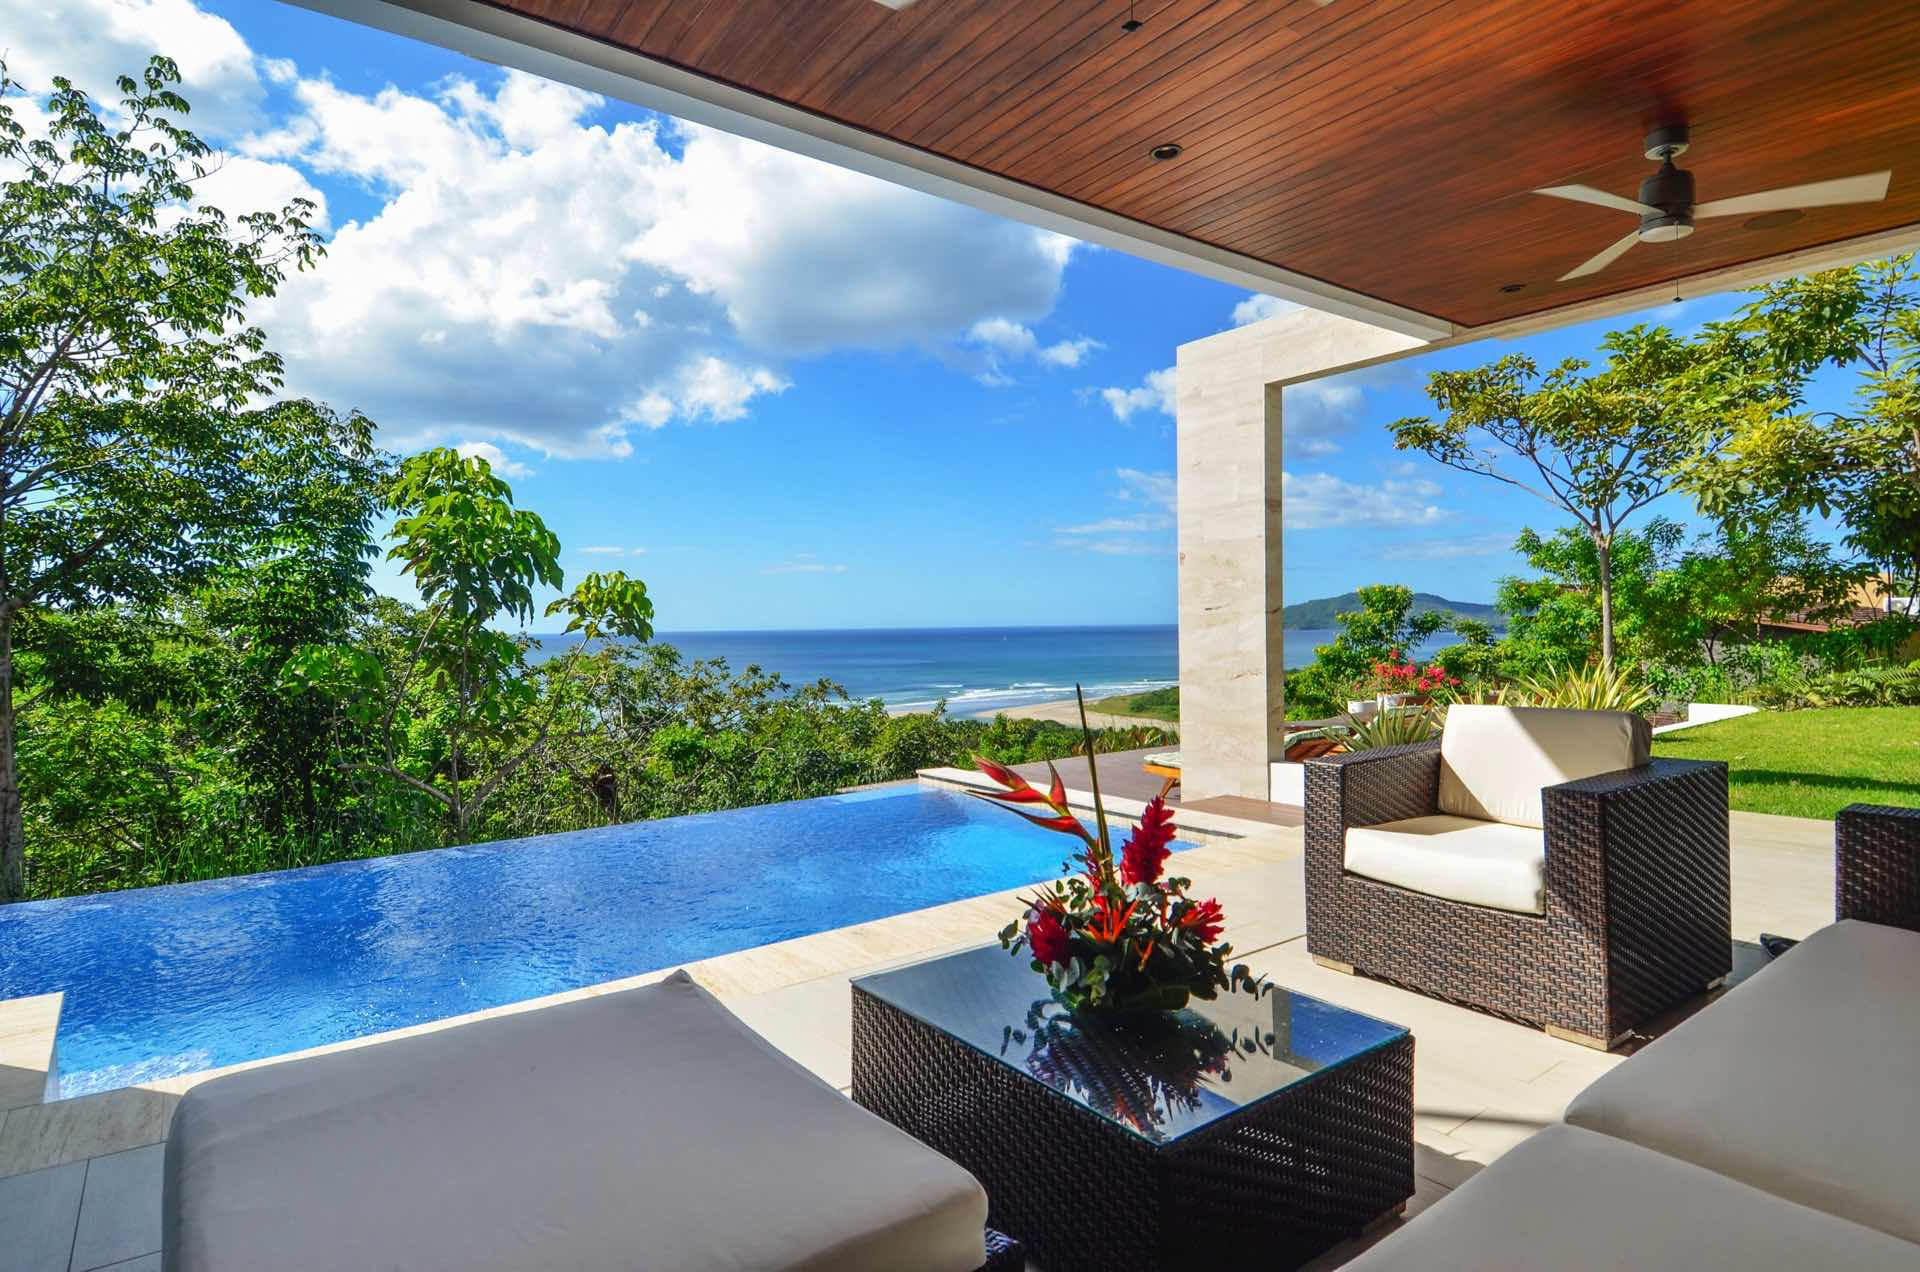 Enjoy a Costa Rican vacation in paradise